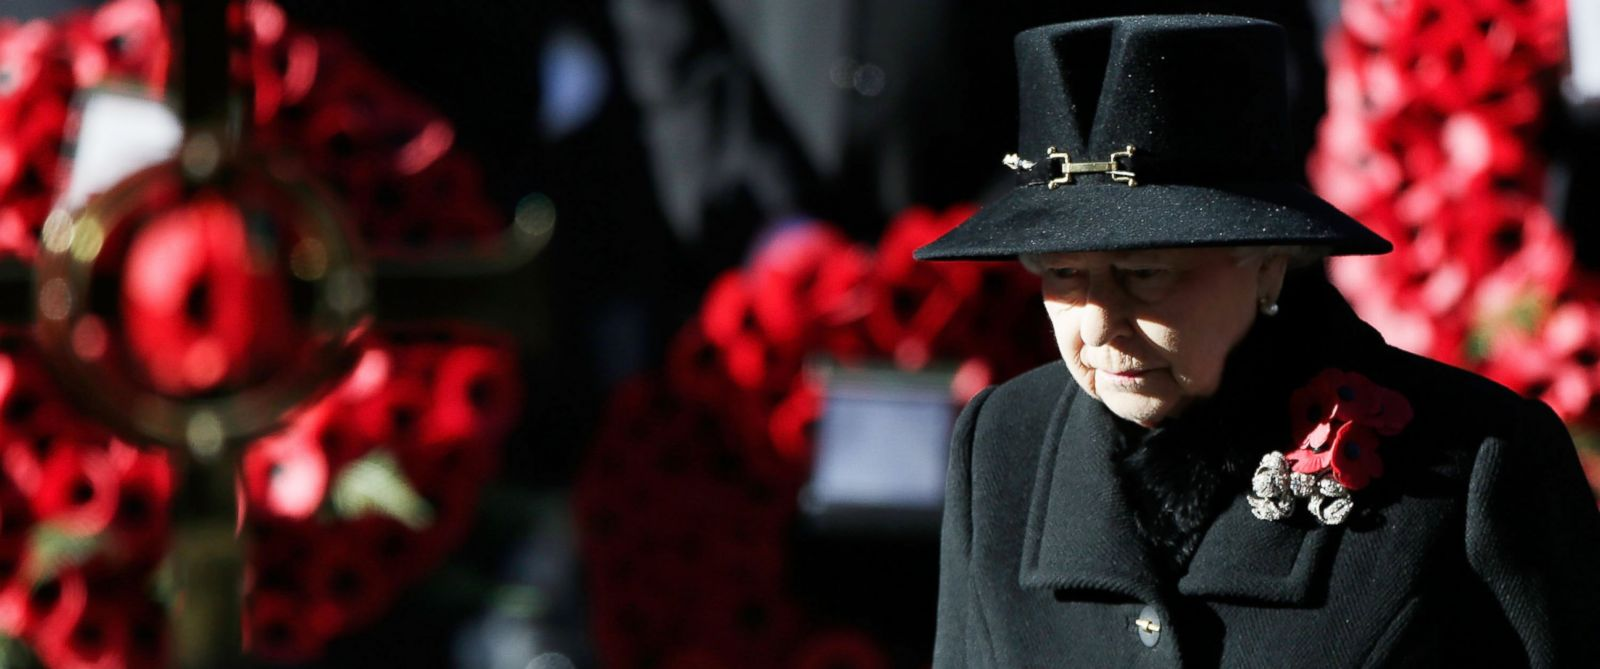 PHOTO: Queen Elizabeth II stands in front of the Cenotaph during a wreath laying ceremony on Whitehall on Nov. 10, 2013 in London.